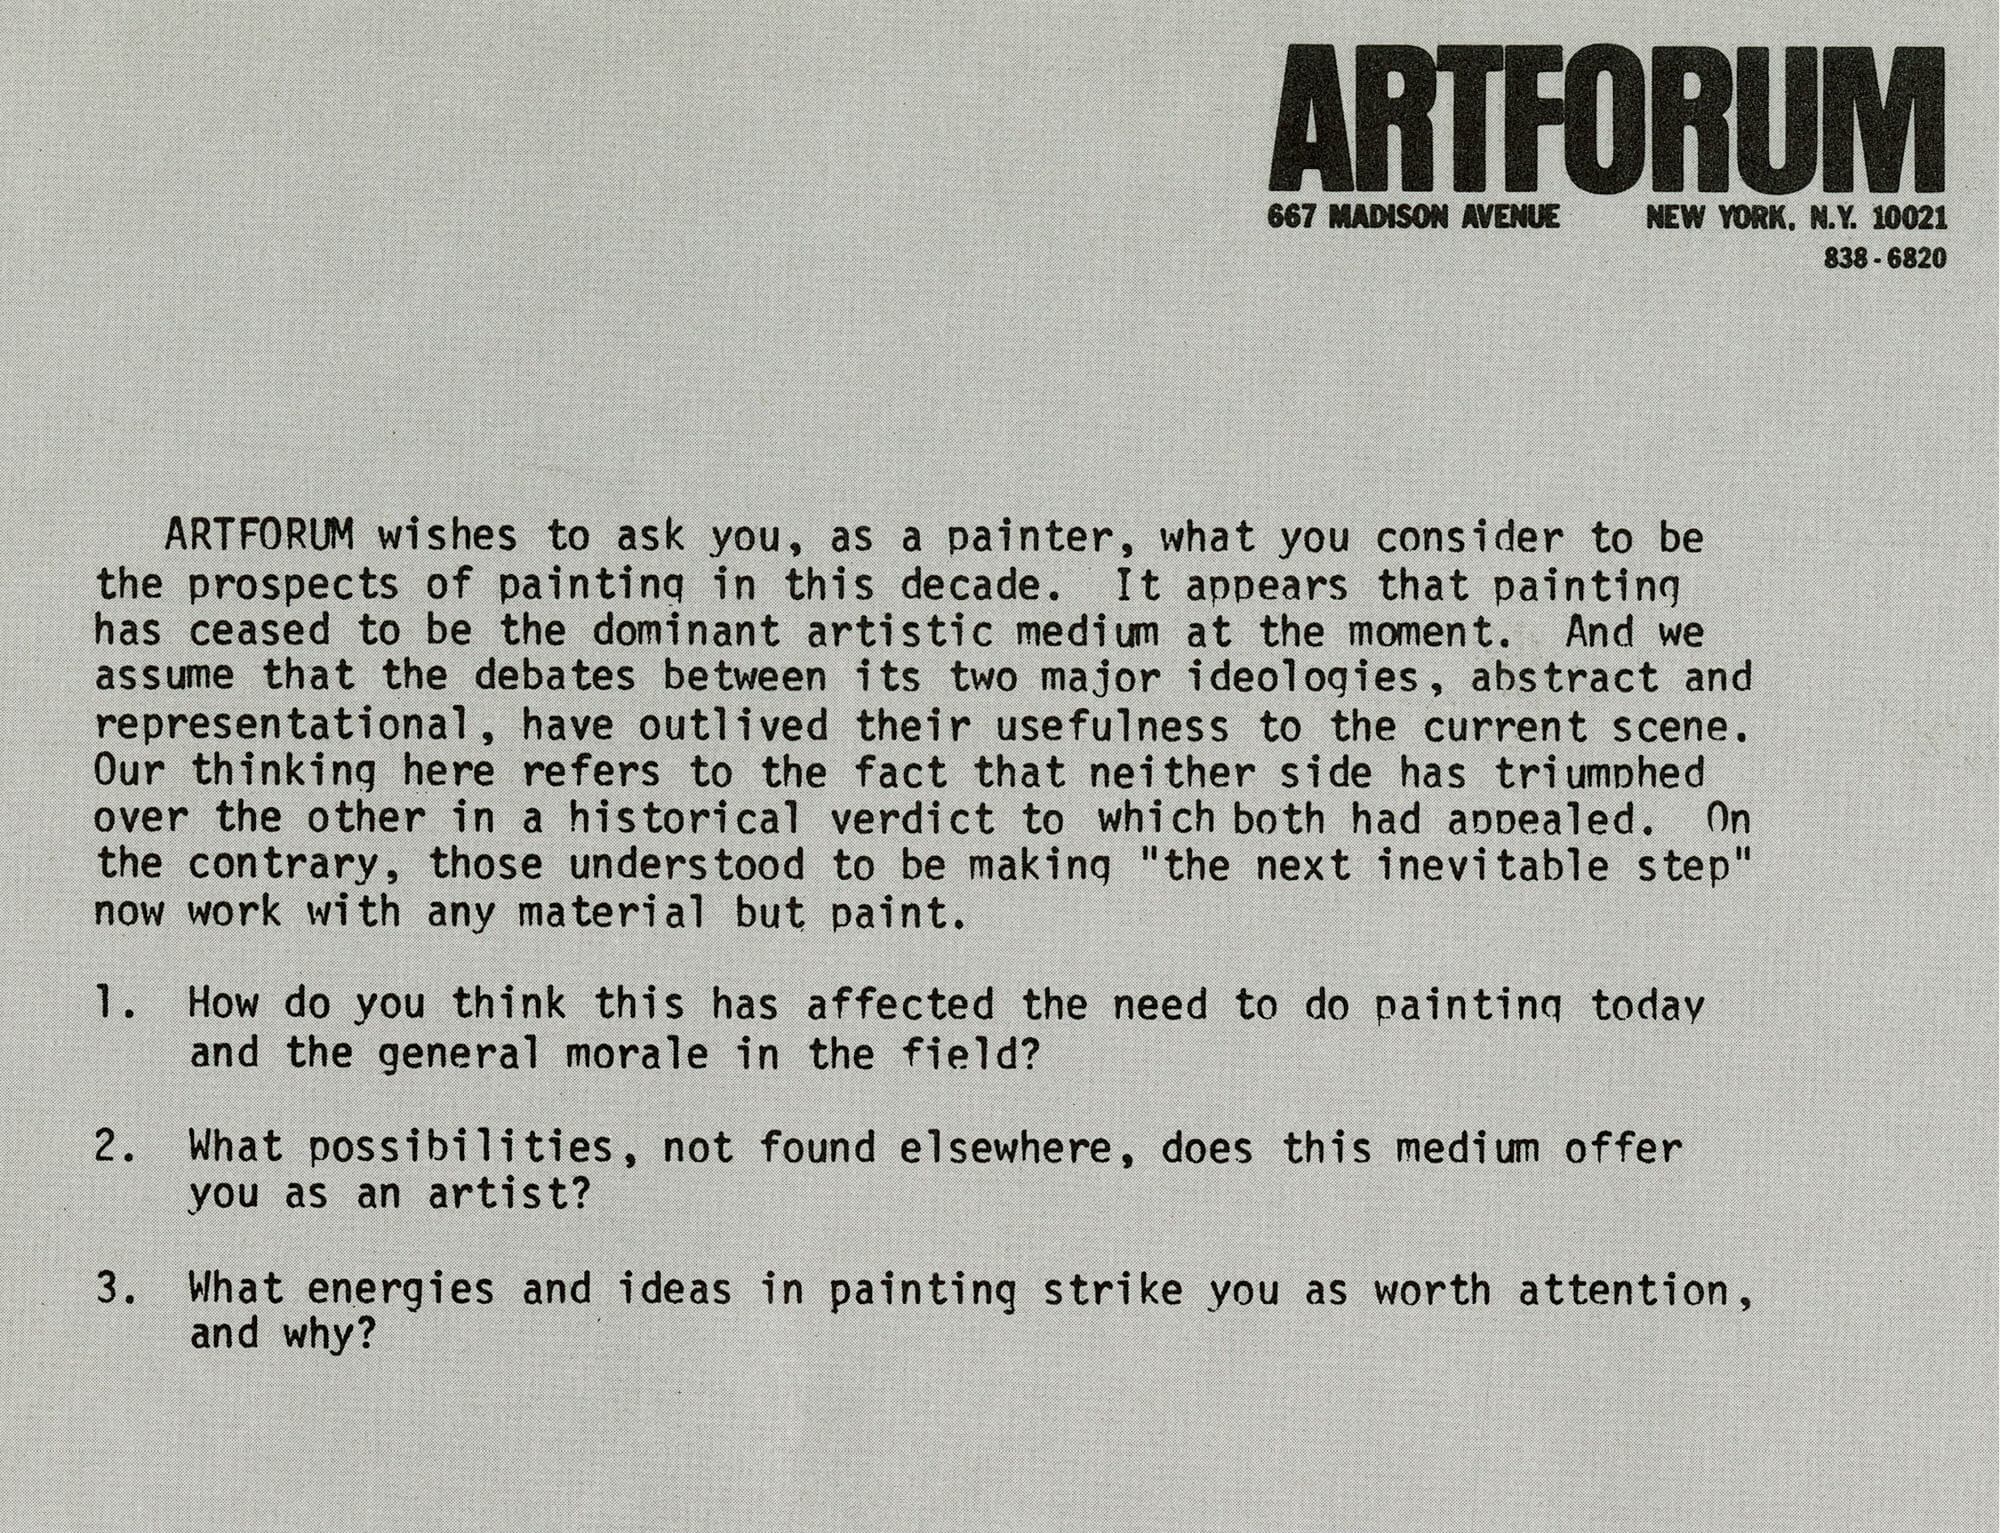 The 1975 Artforum piece